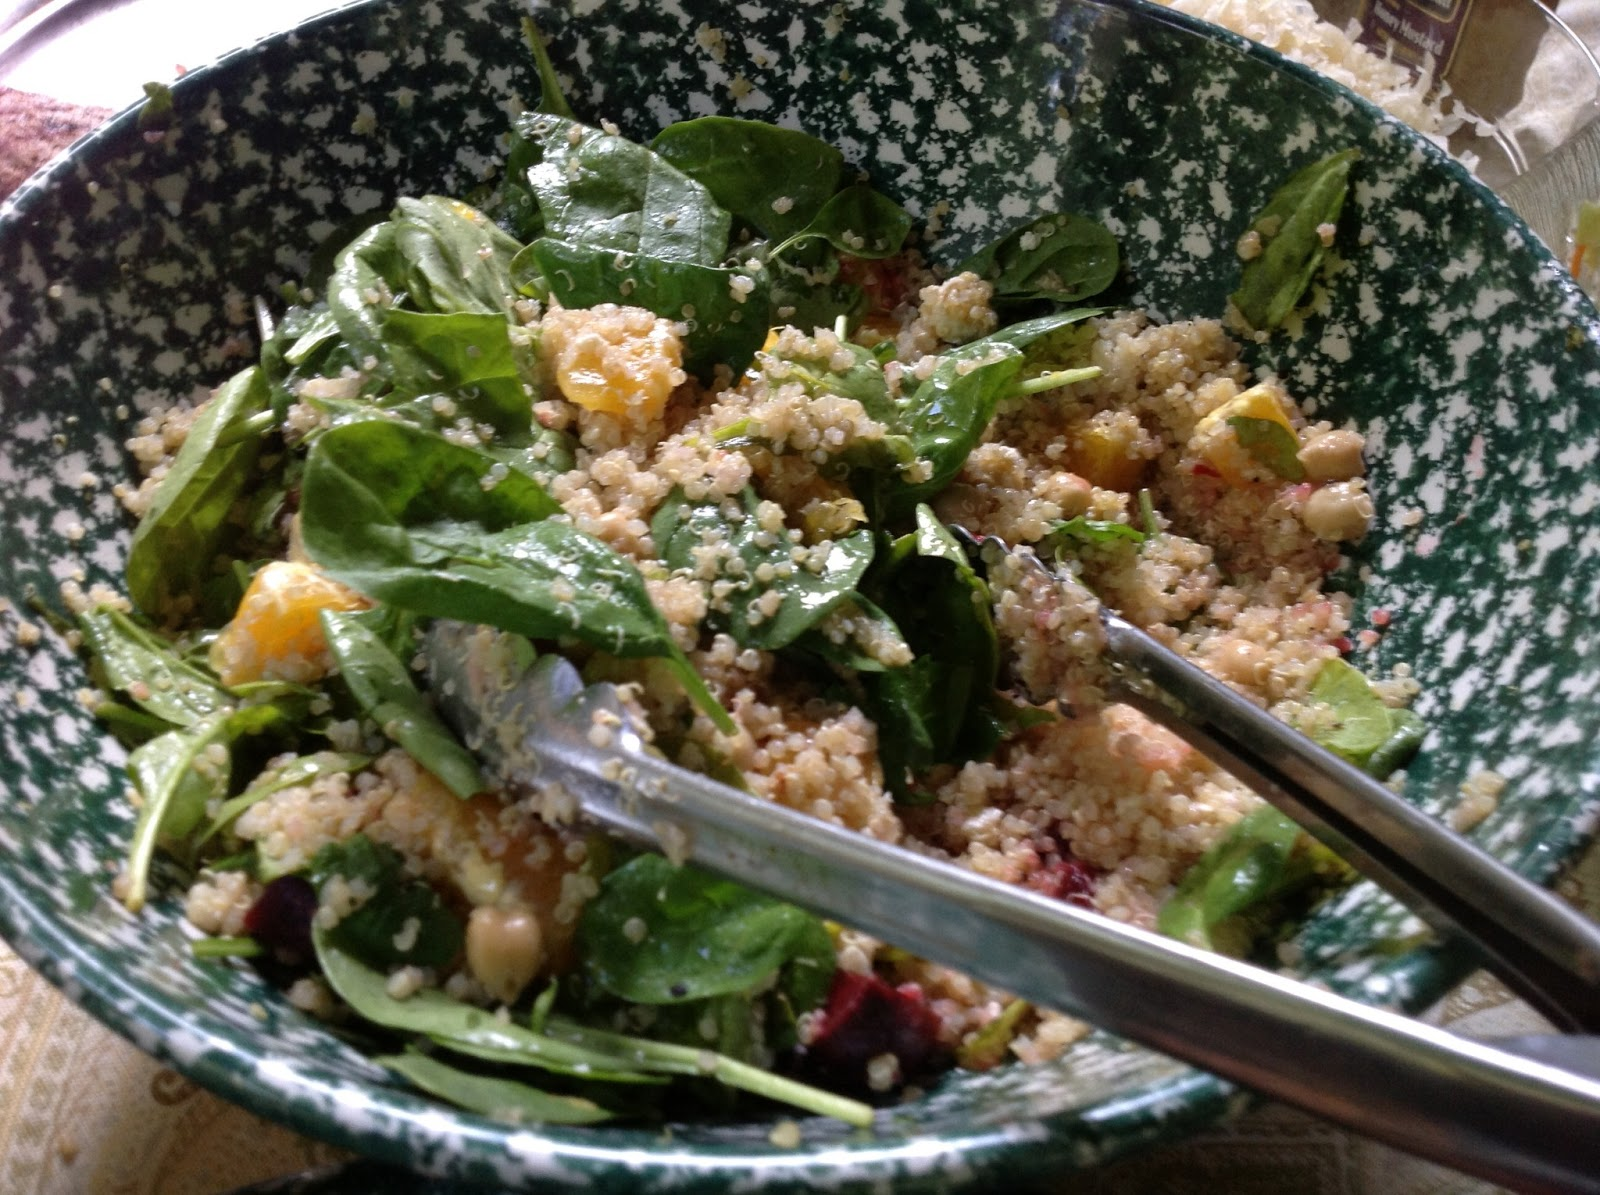 ... quinoa salad with sour cherries and shiitakes warm quinoa spinach and